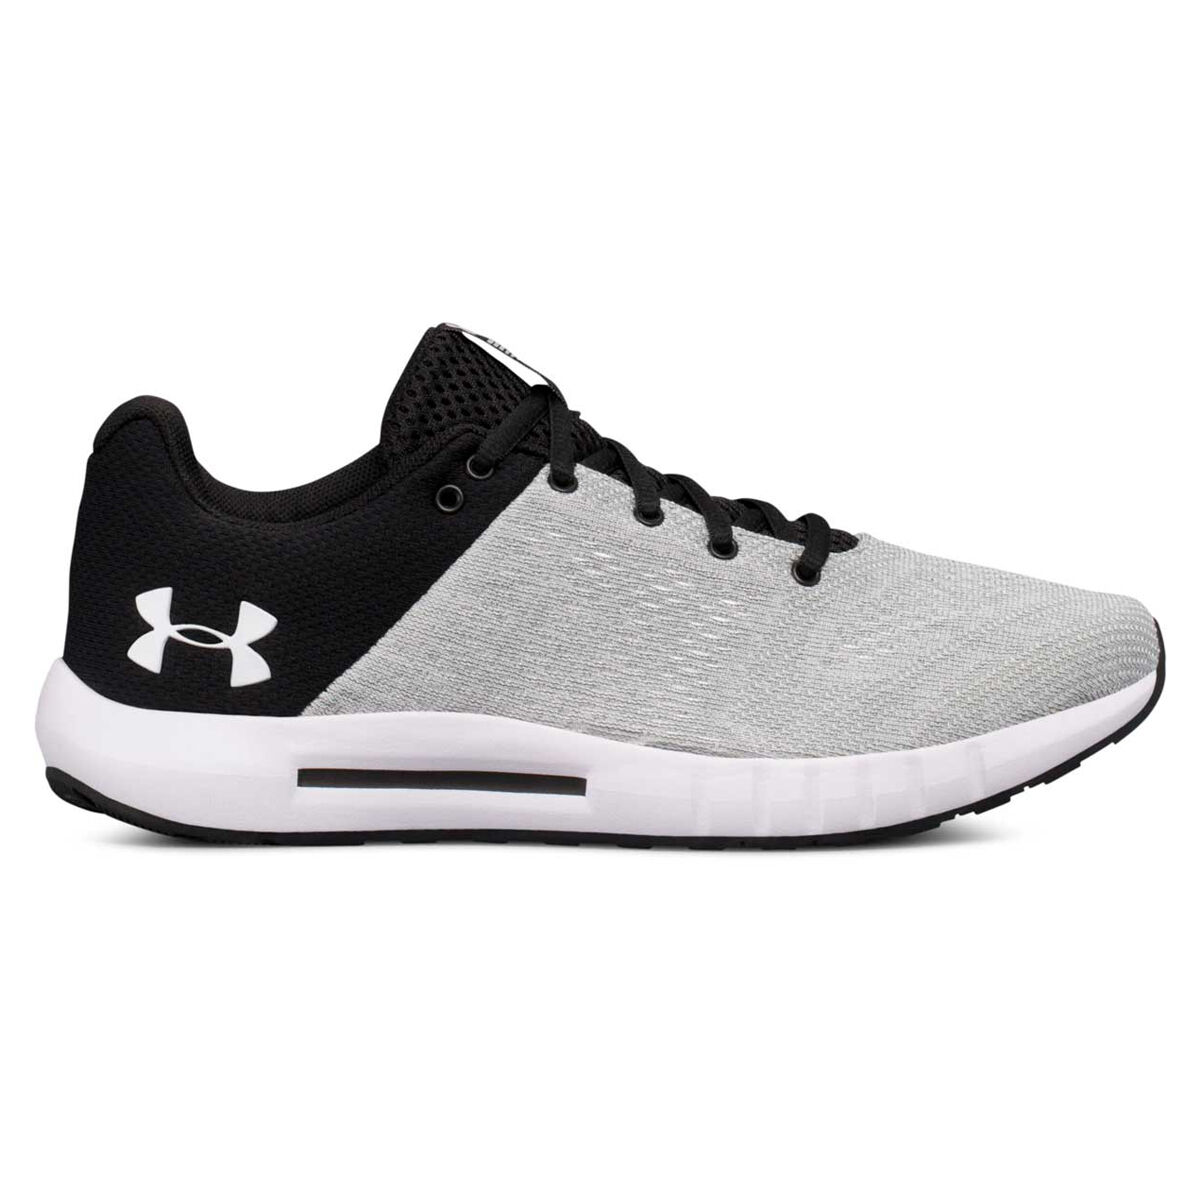 Under Armour Womens Micro G Pursuit Running Shoe,